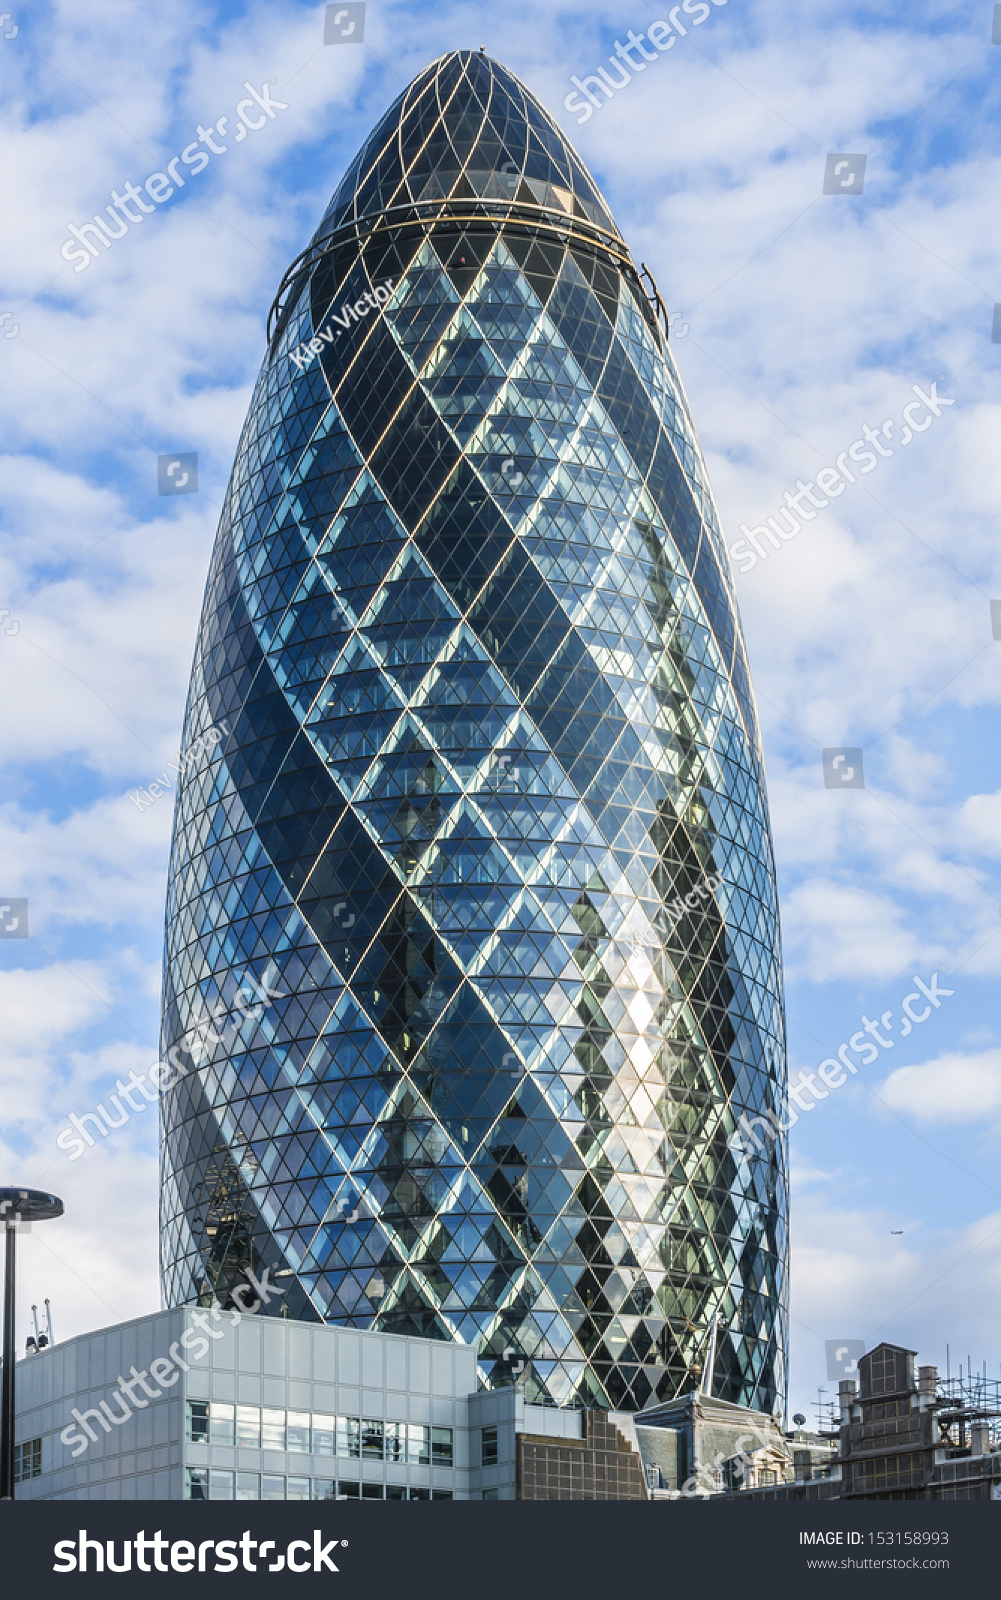 London june 3 view of gherkin building 30 st mary axe at sunset in londo - Adresse london exemple ...